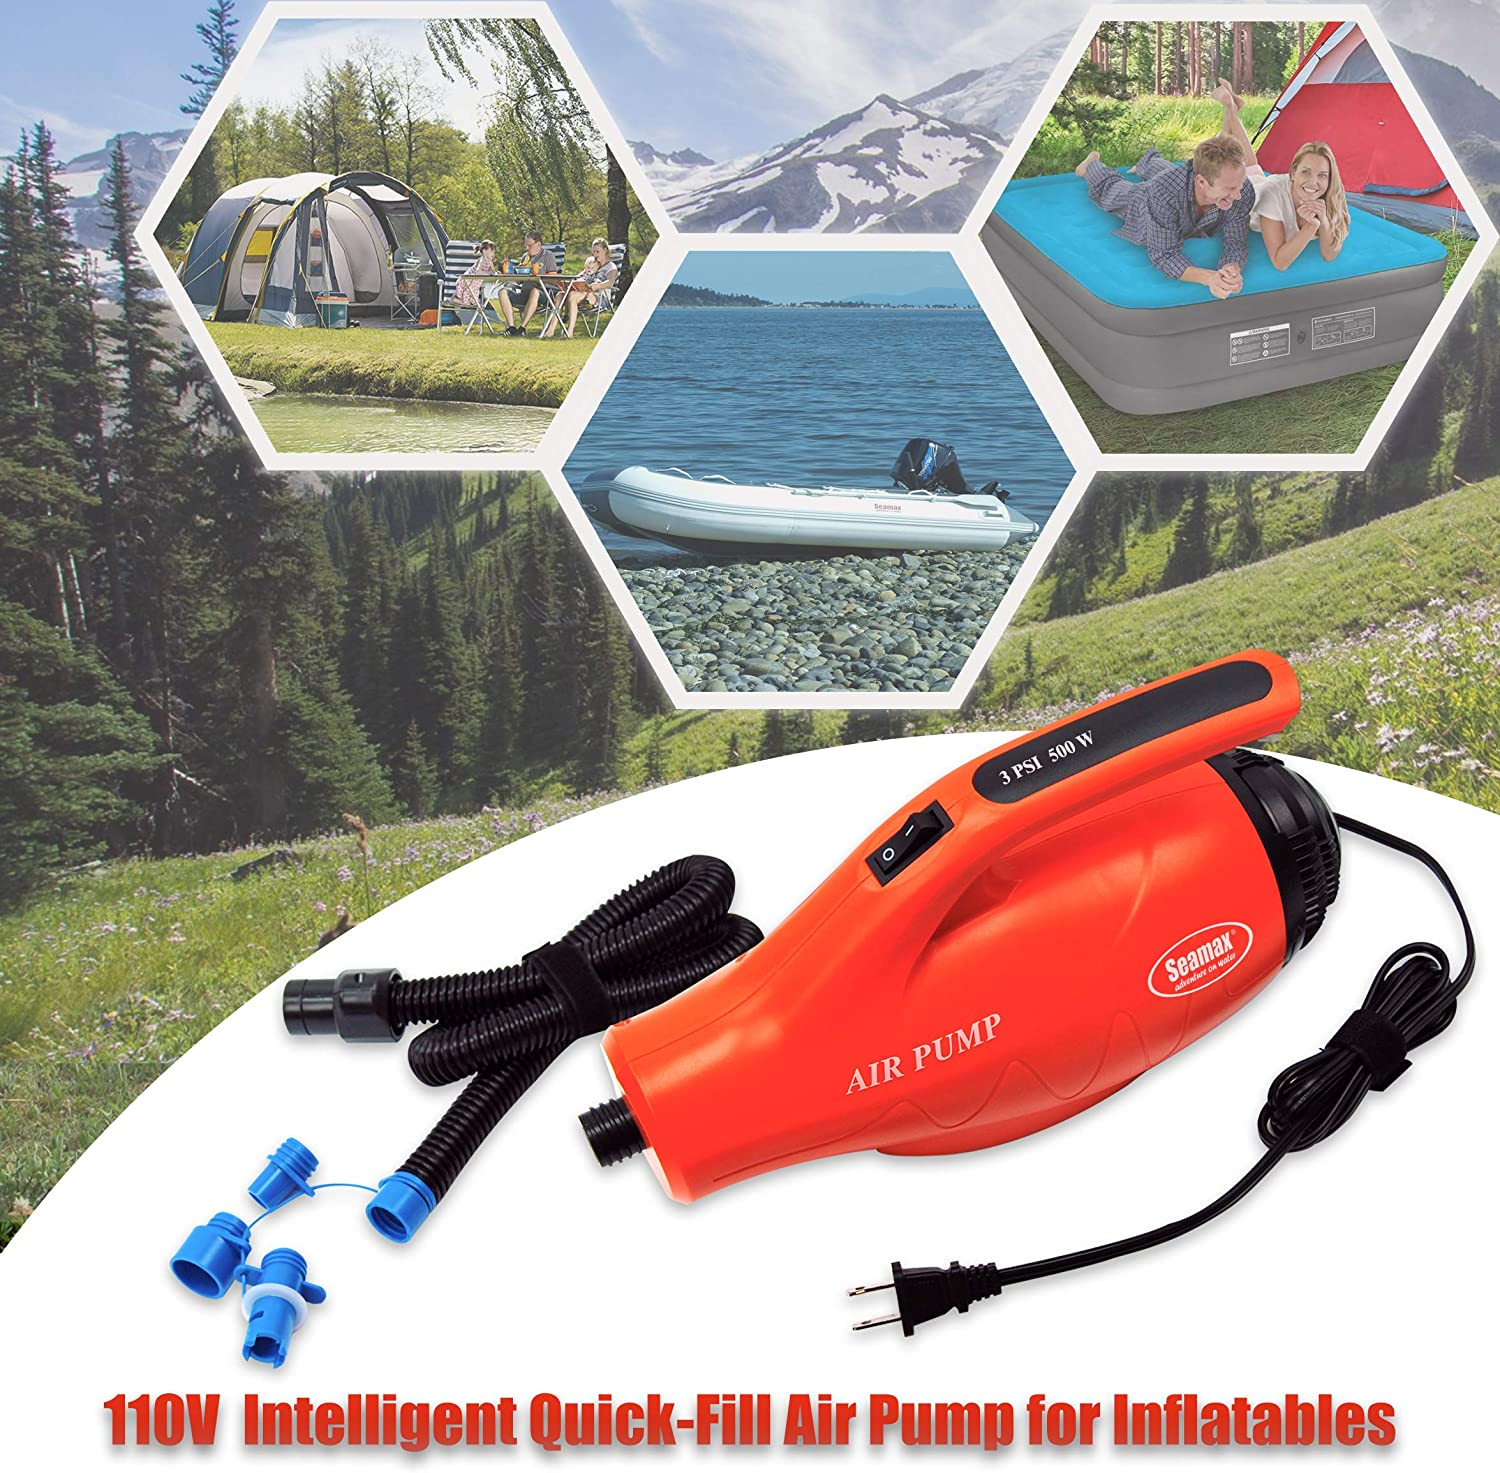 Seamax High Speed 120V AC Turbo Electric Air Pump for Inflatable Tent & Boat Max 3 PSI